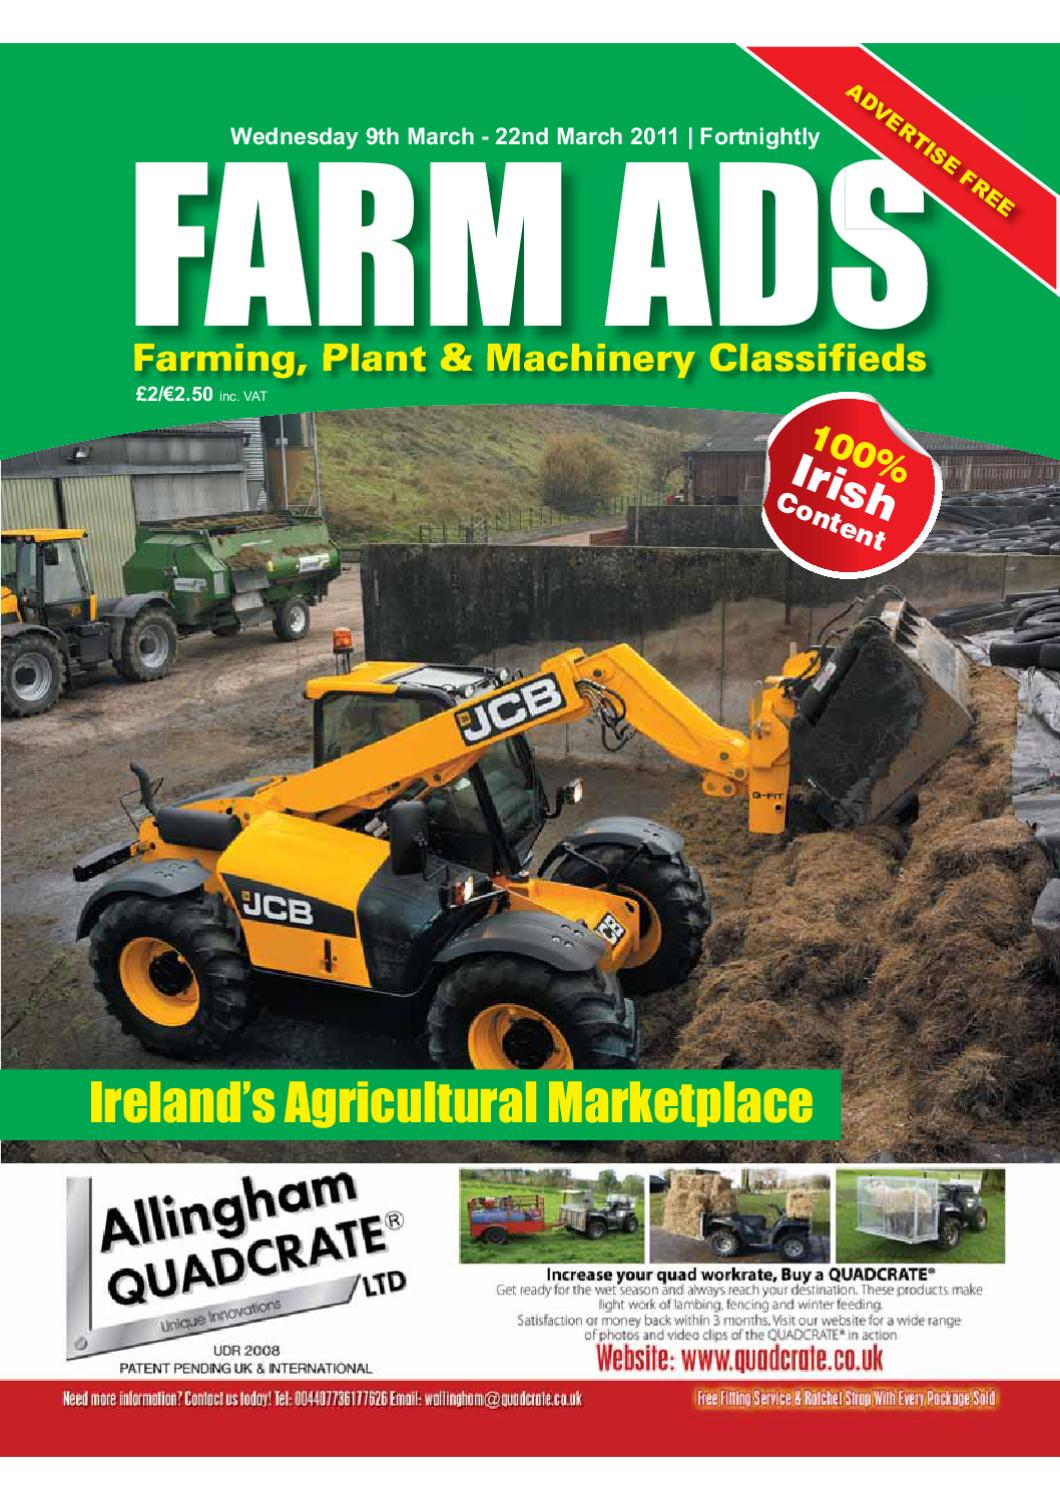 Farm ads issue 5 by ids media group ltd issuu fandeluxe Choice Image